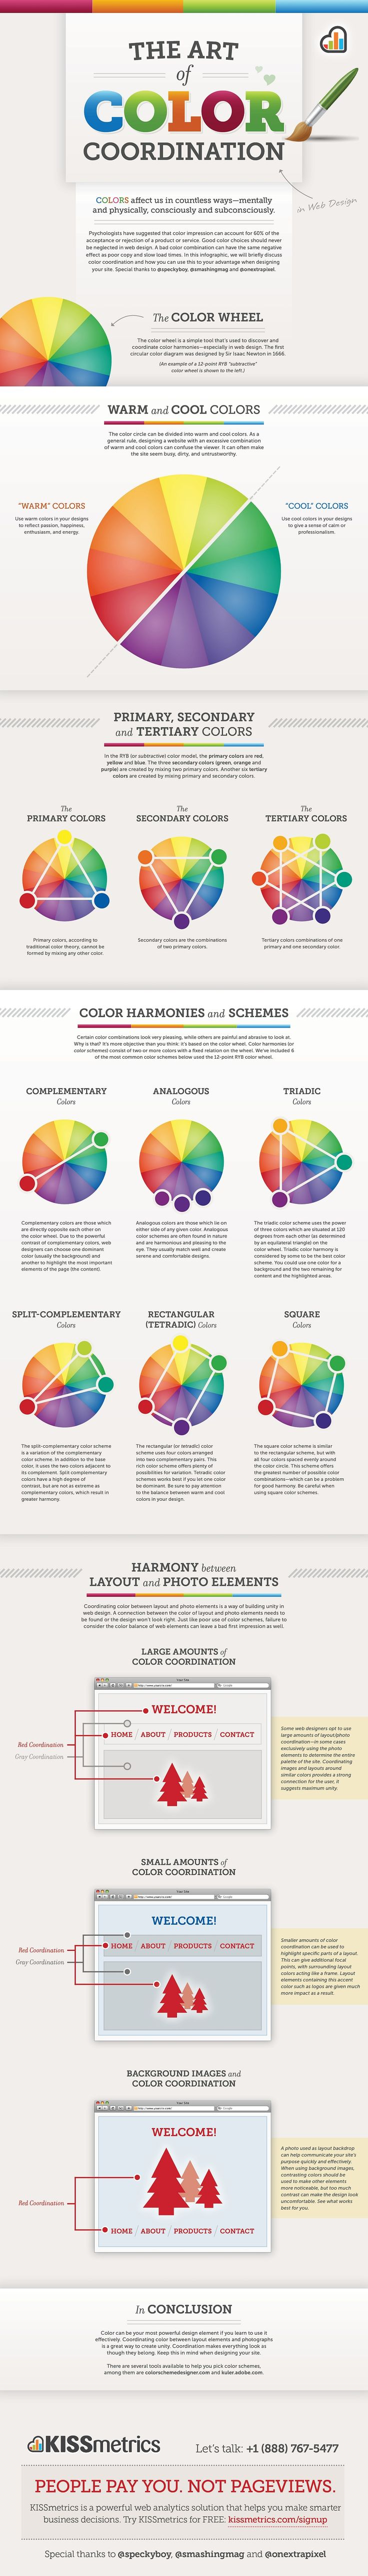 The Art of Color Coordination #infographic #sm #socialmedia #design #in